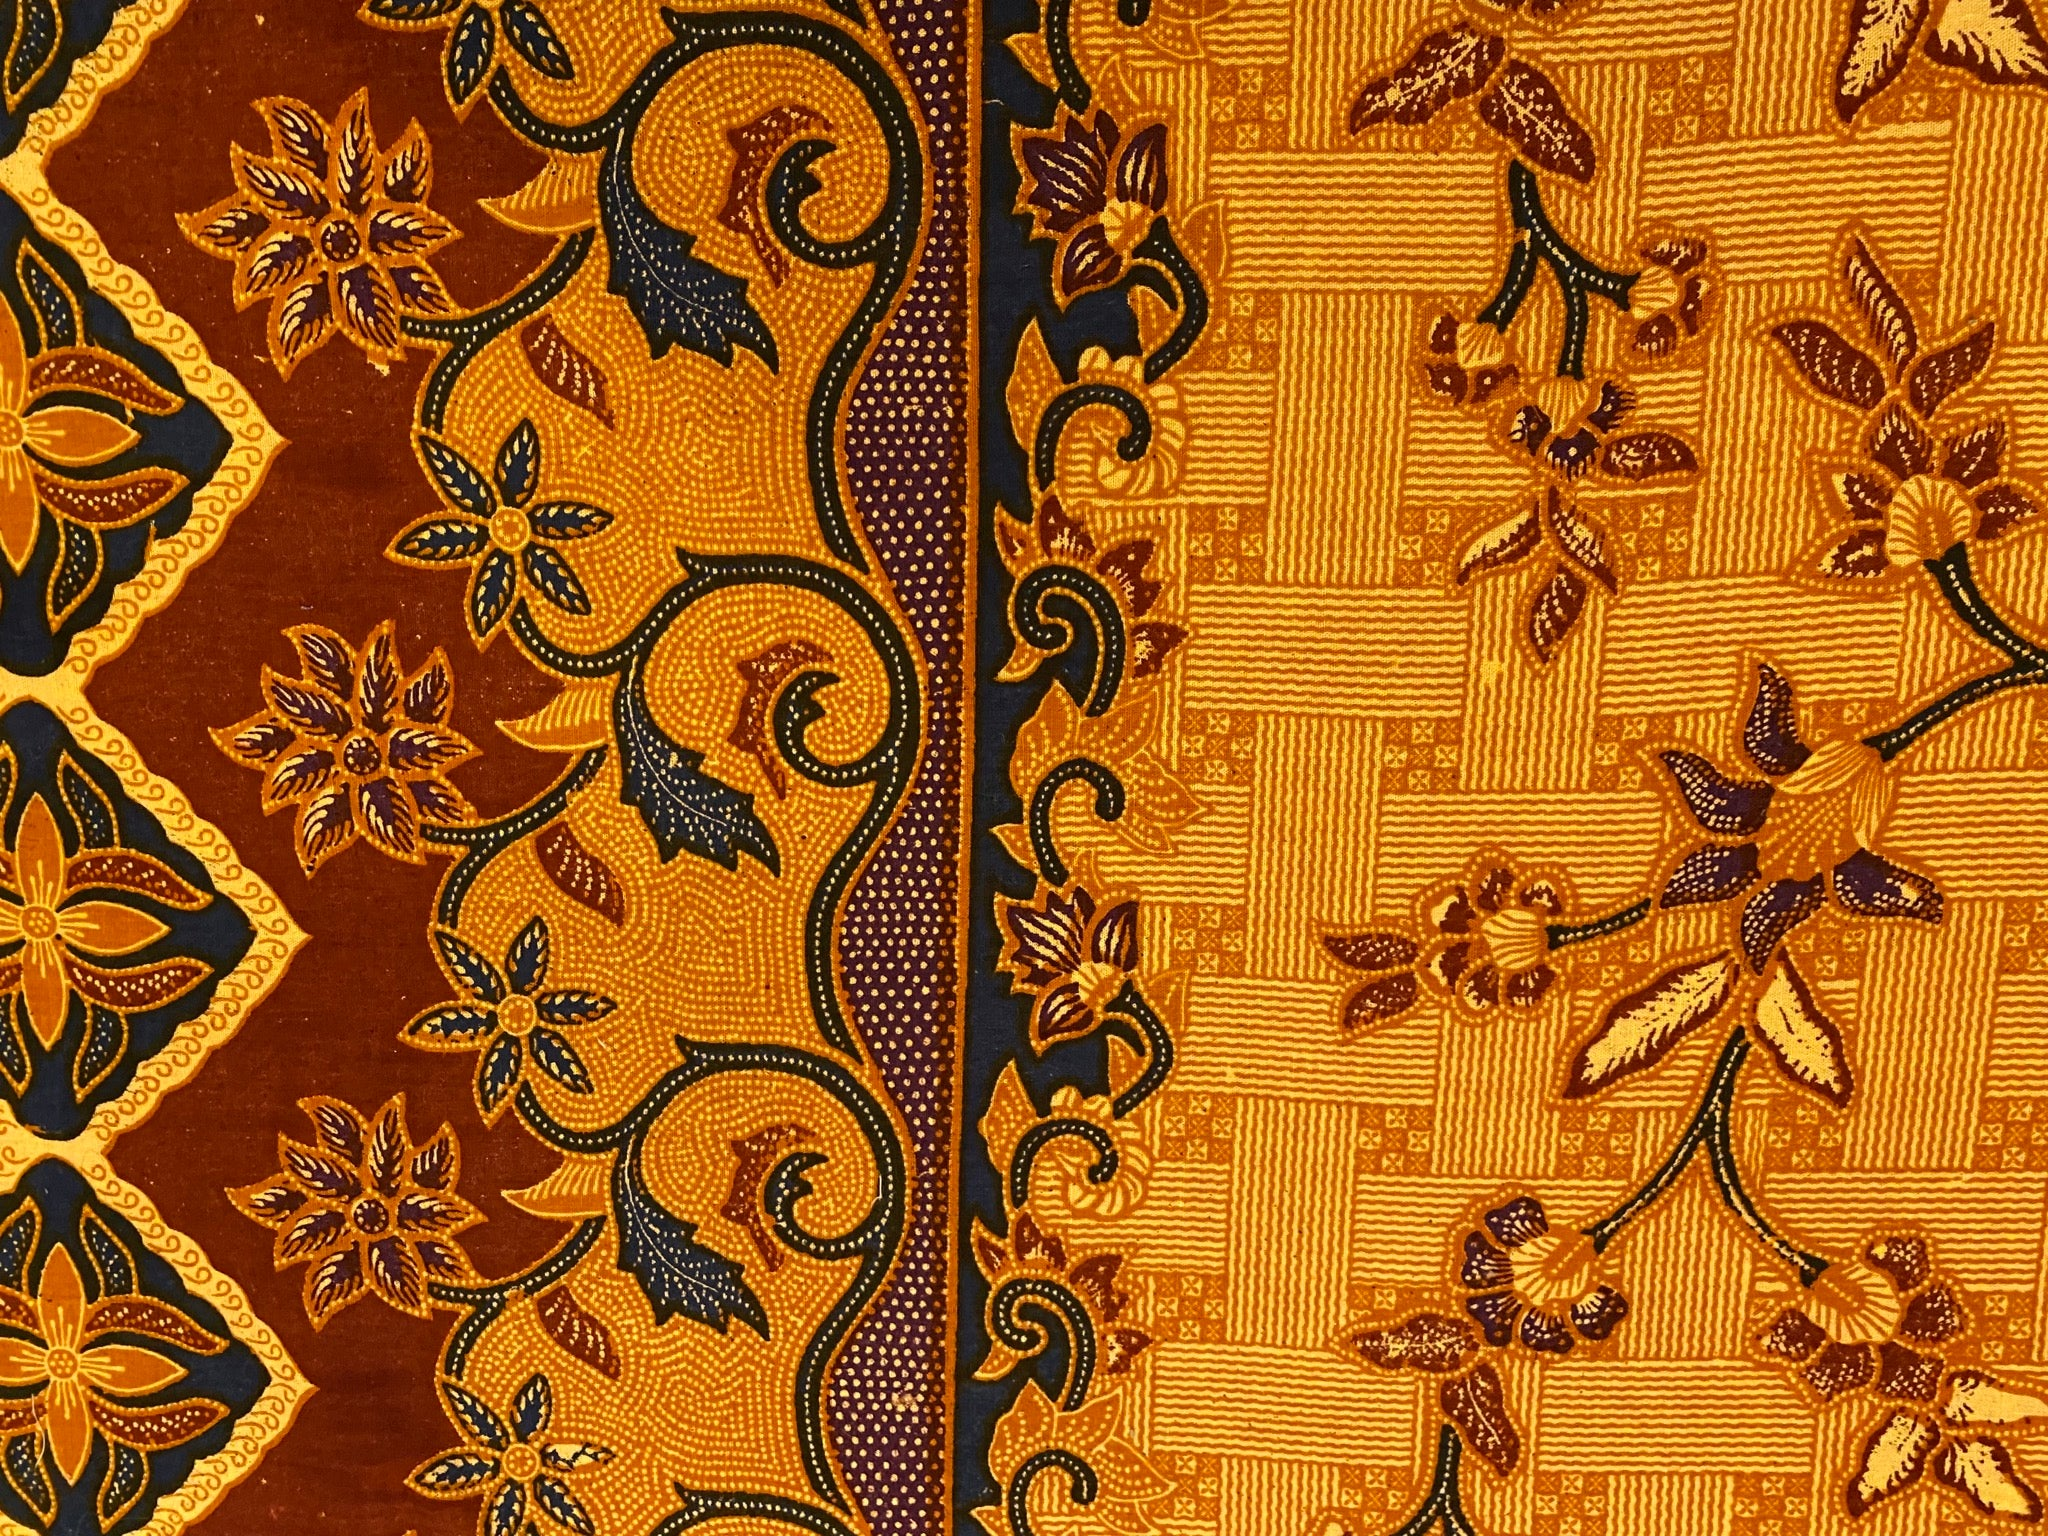 Batik in Golden Brown with Black Brown Tan Tribal and Floral from Philippines Custom Made Cotton Cloth Mask